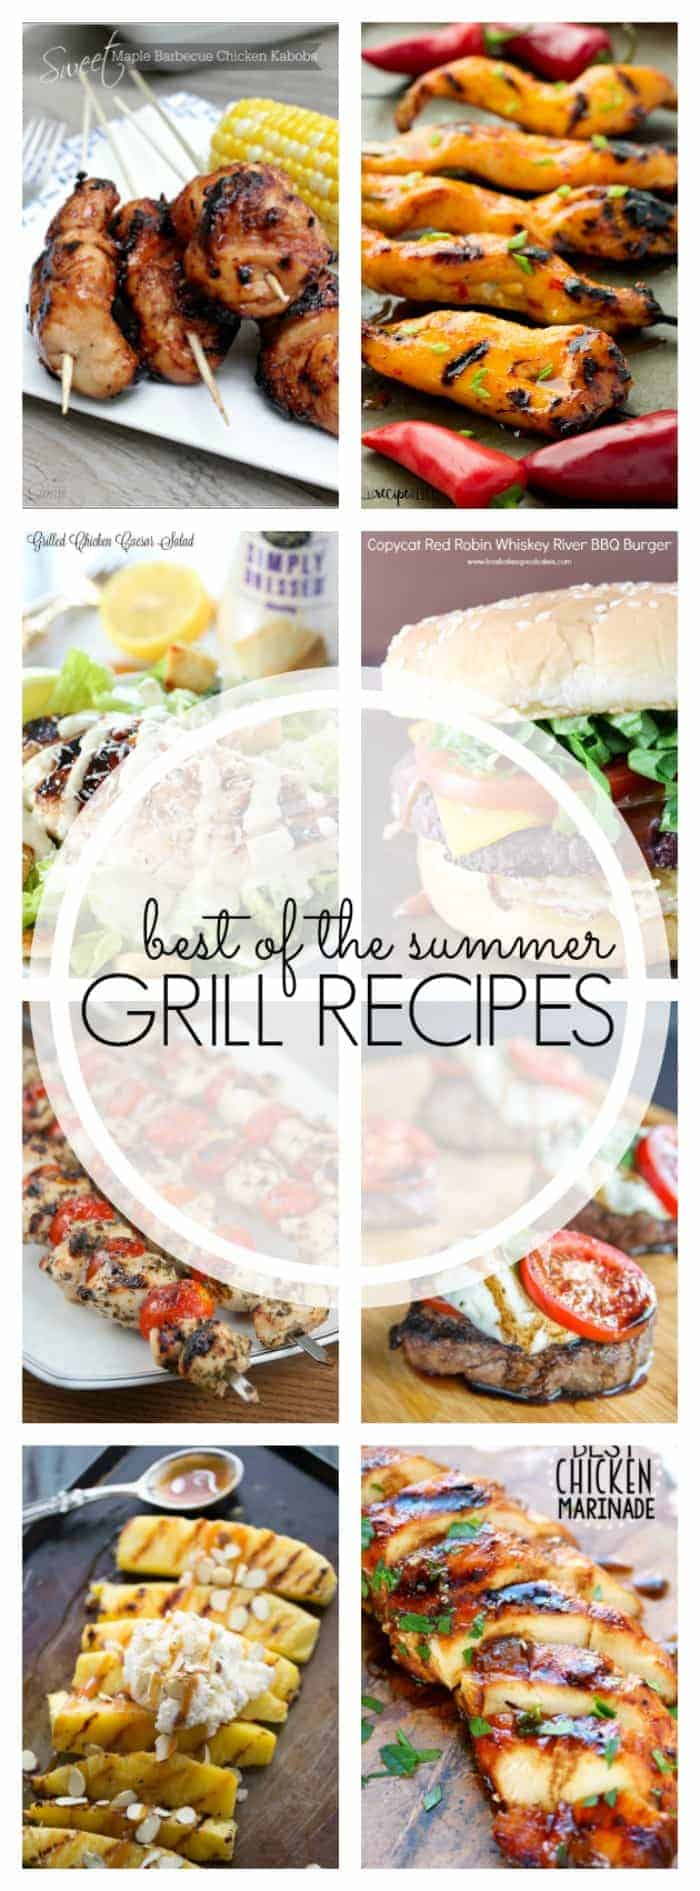 All the summer grilling recipes you need, including hot dogs, chicken, burgers and dessert!